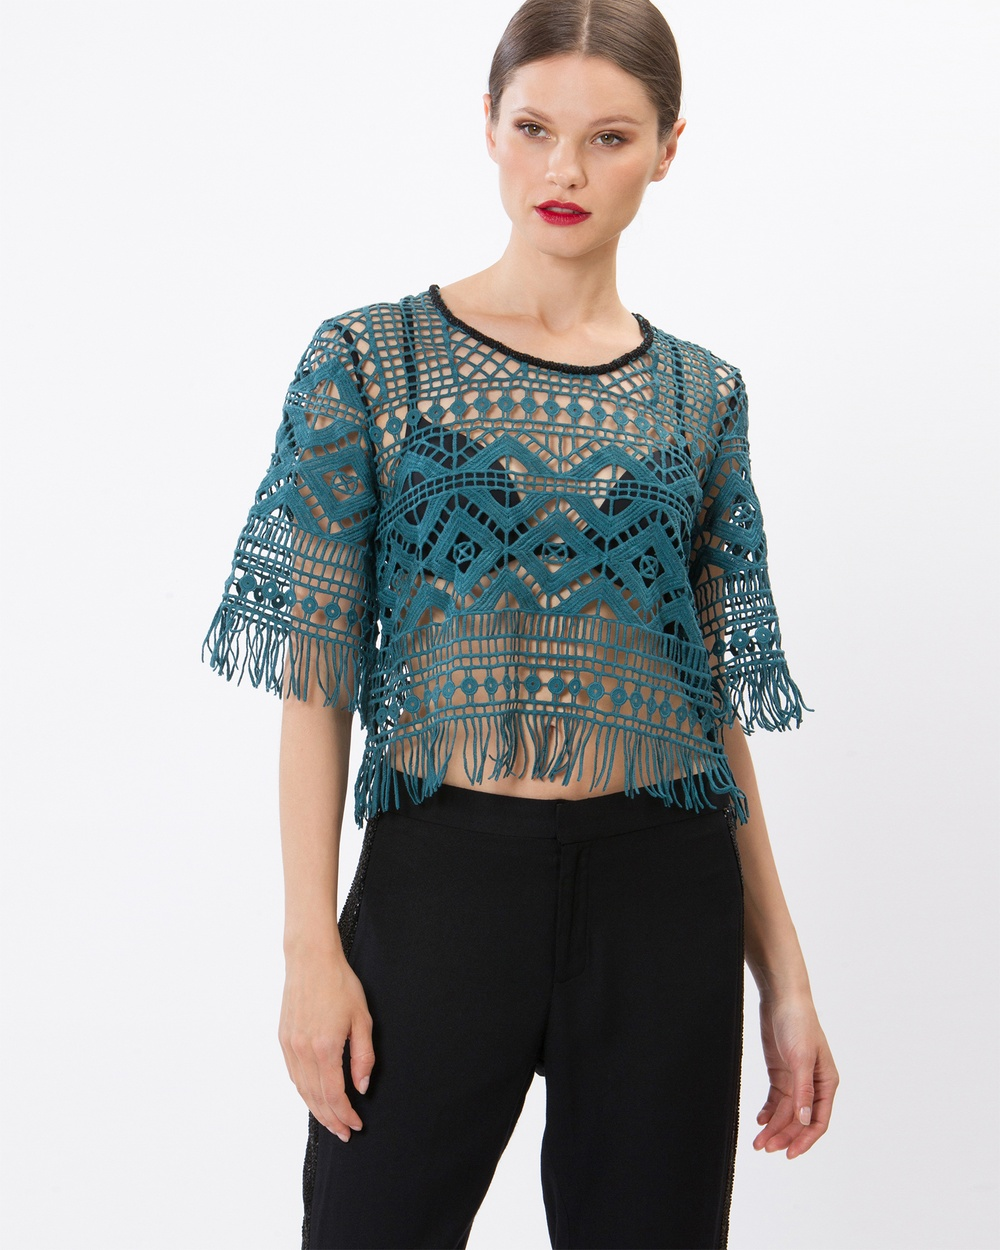 SIYONA Maya Mosaic Embroidered Beaded Top Tops Teal Maya Mosaic Embroidered Beaded Top